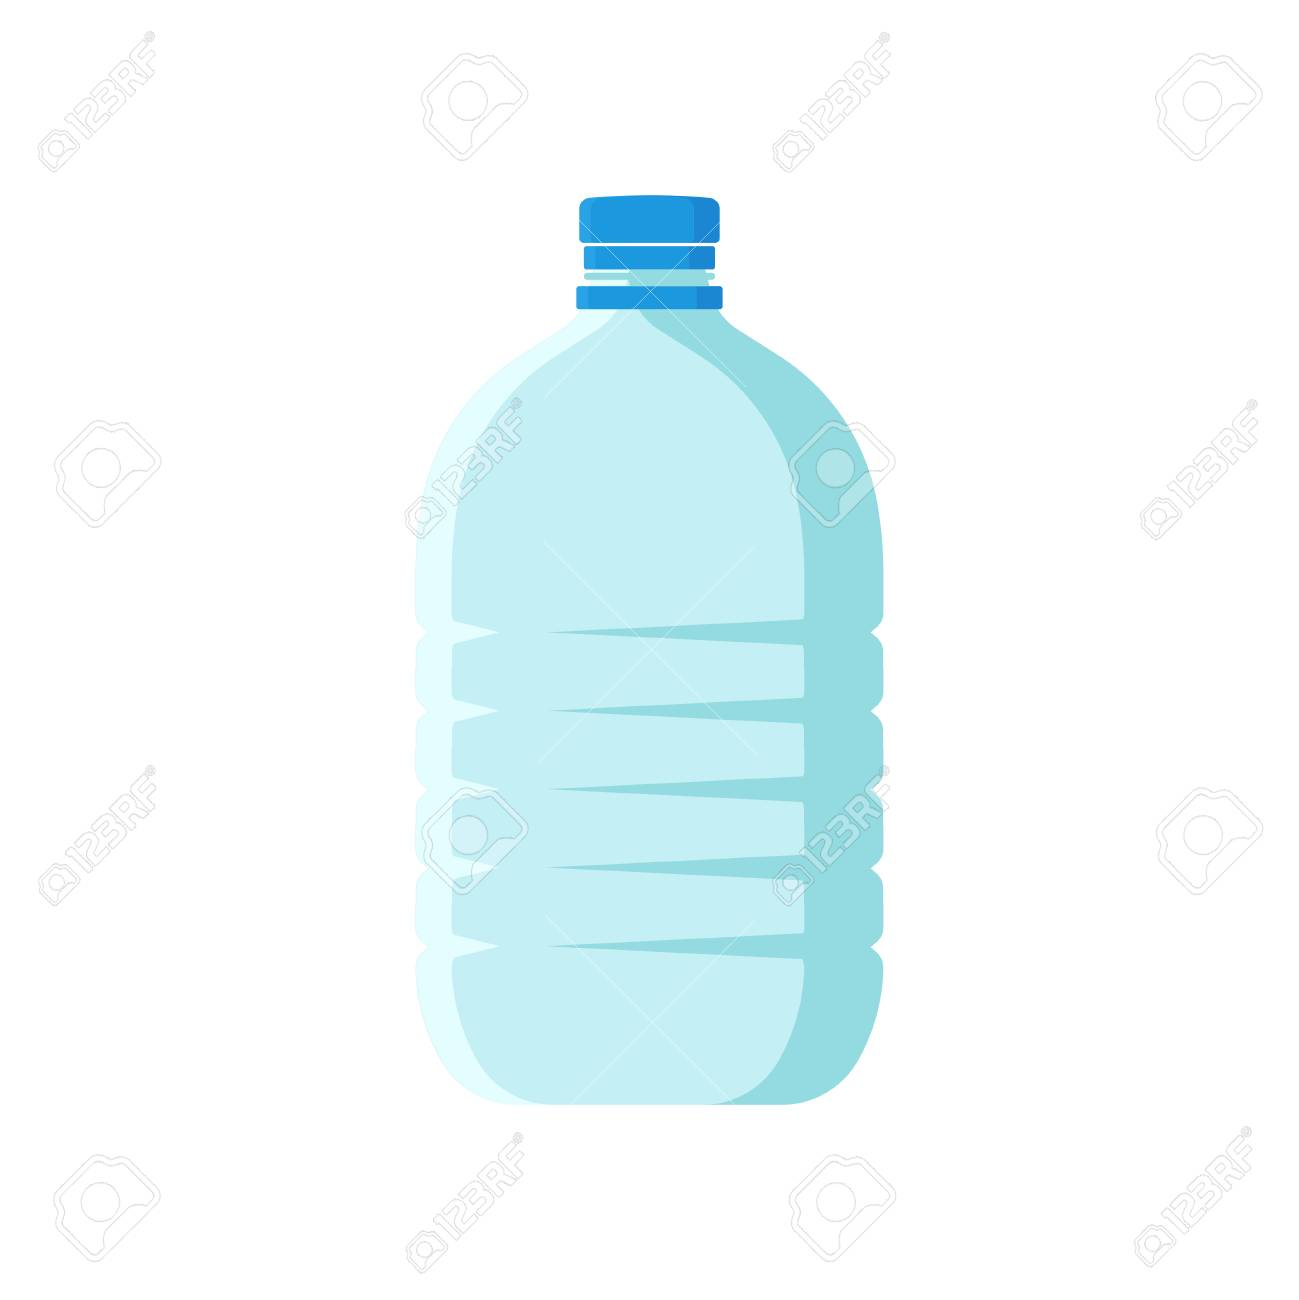 Large Plastic Bottle With Blue Lid Empty Transparent Container Royalty Free Cliparts Vectors And Stock Illustration Image 103776693